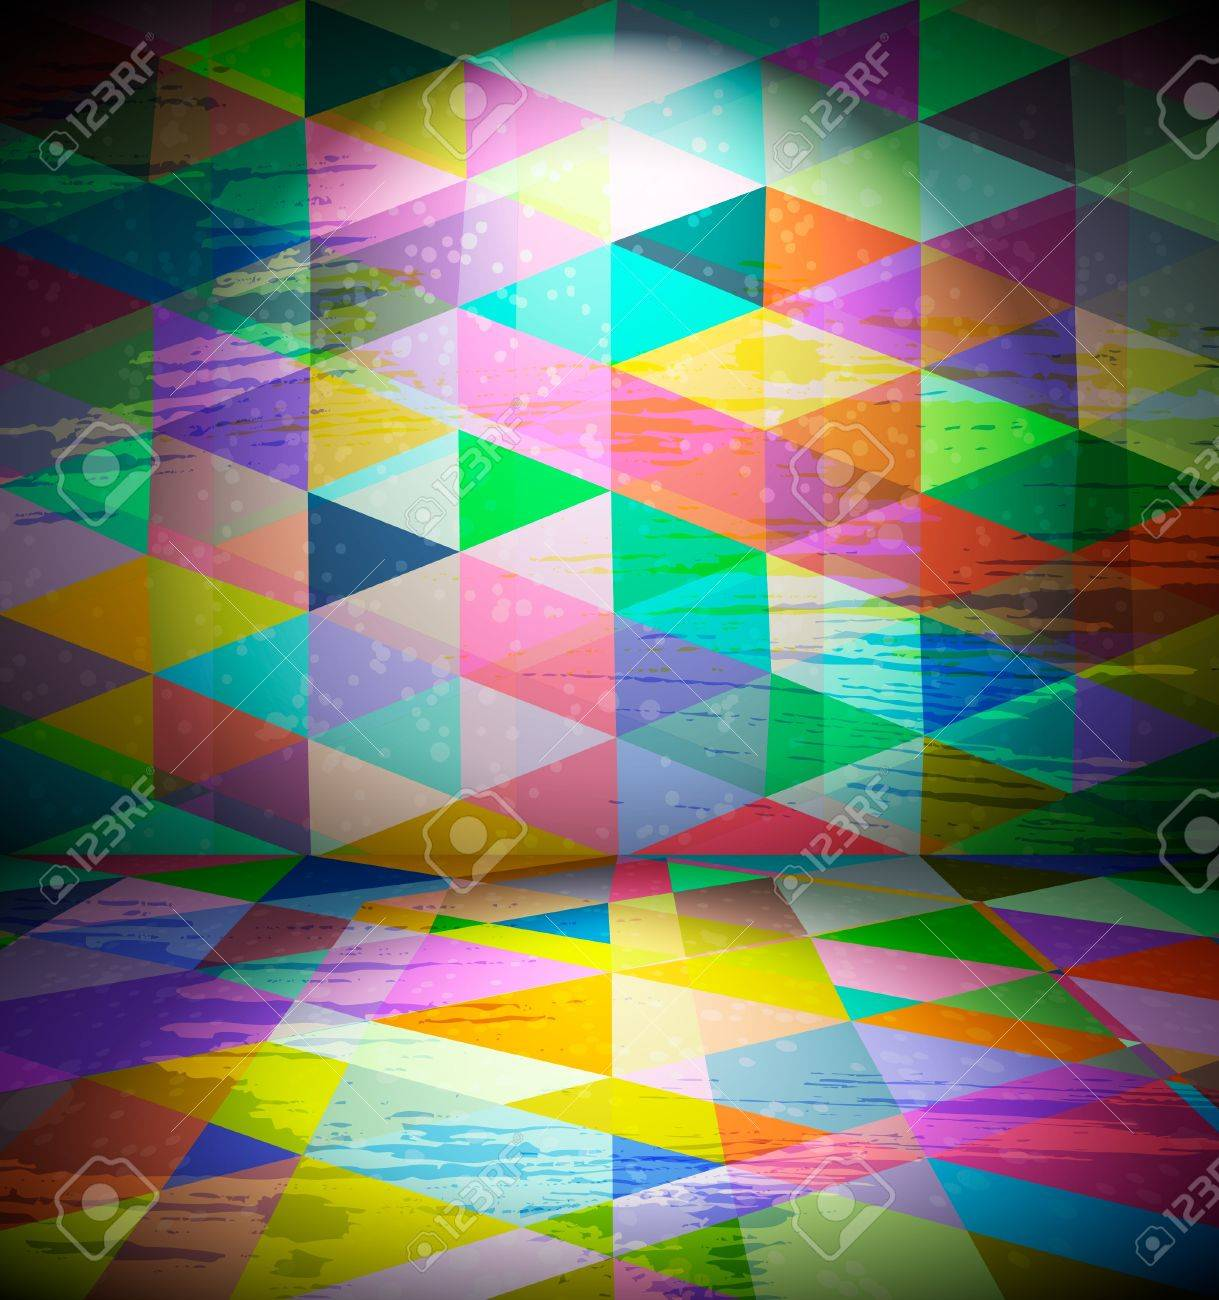 Club room with triangular wallpaper Stock Vector - 10979868